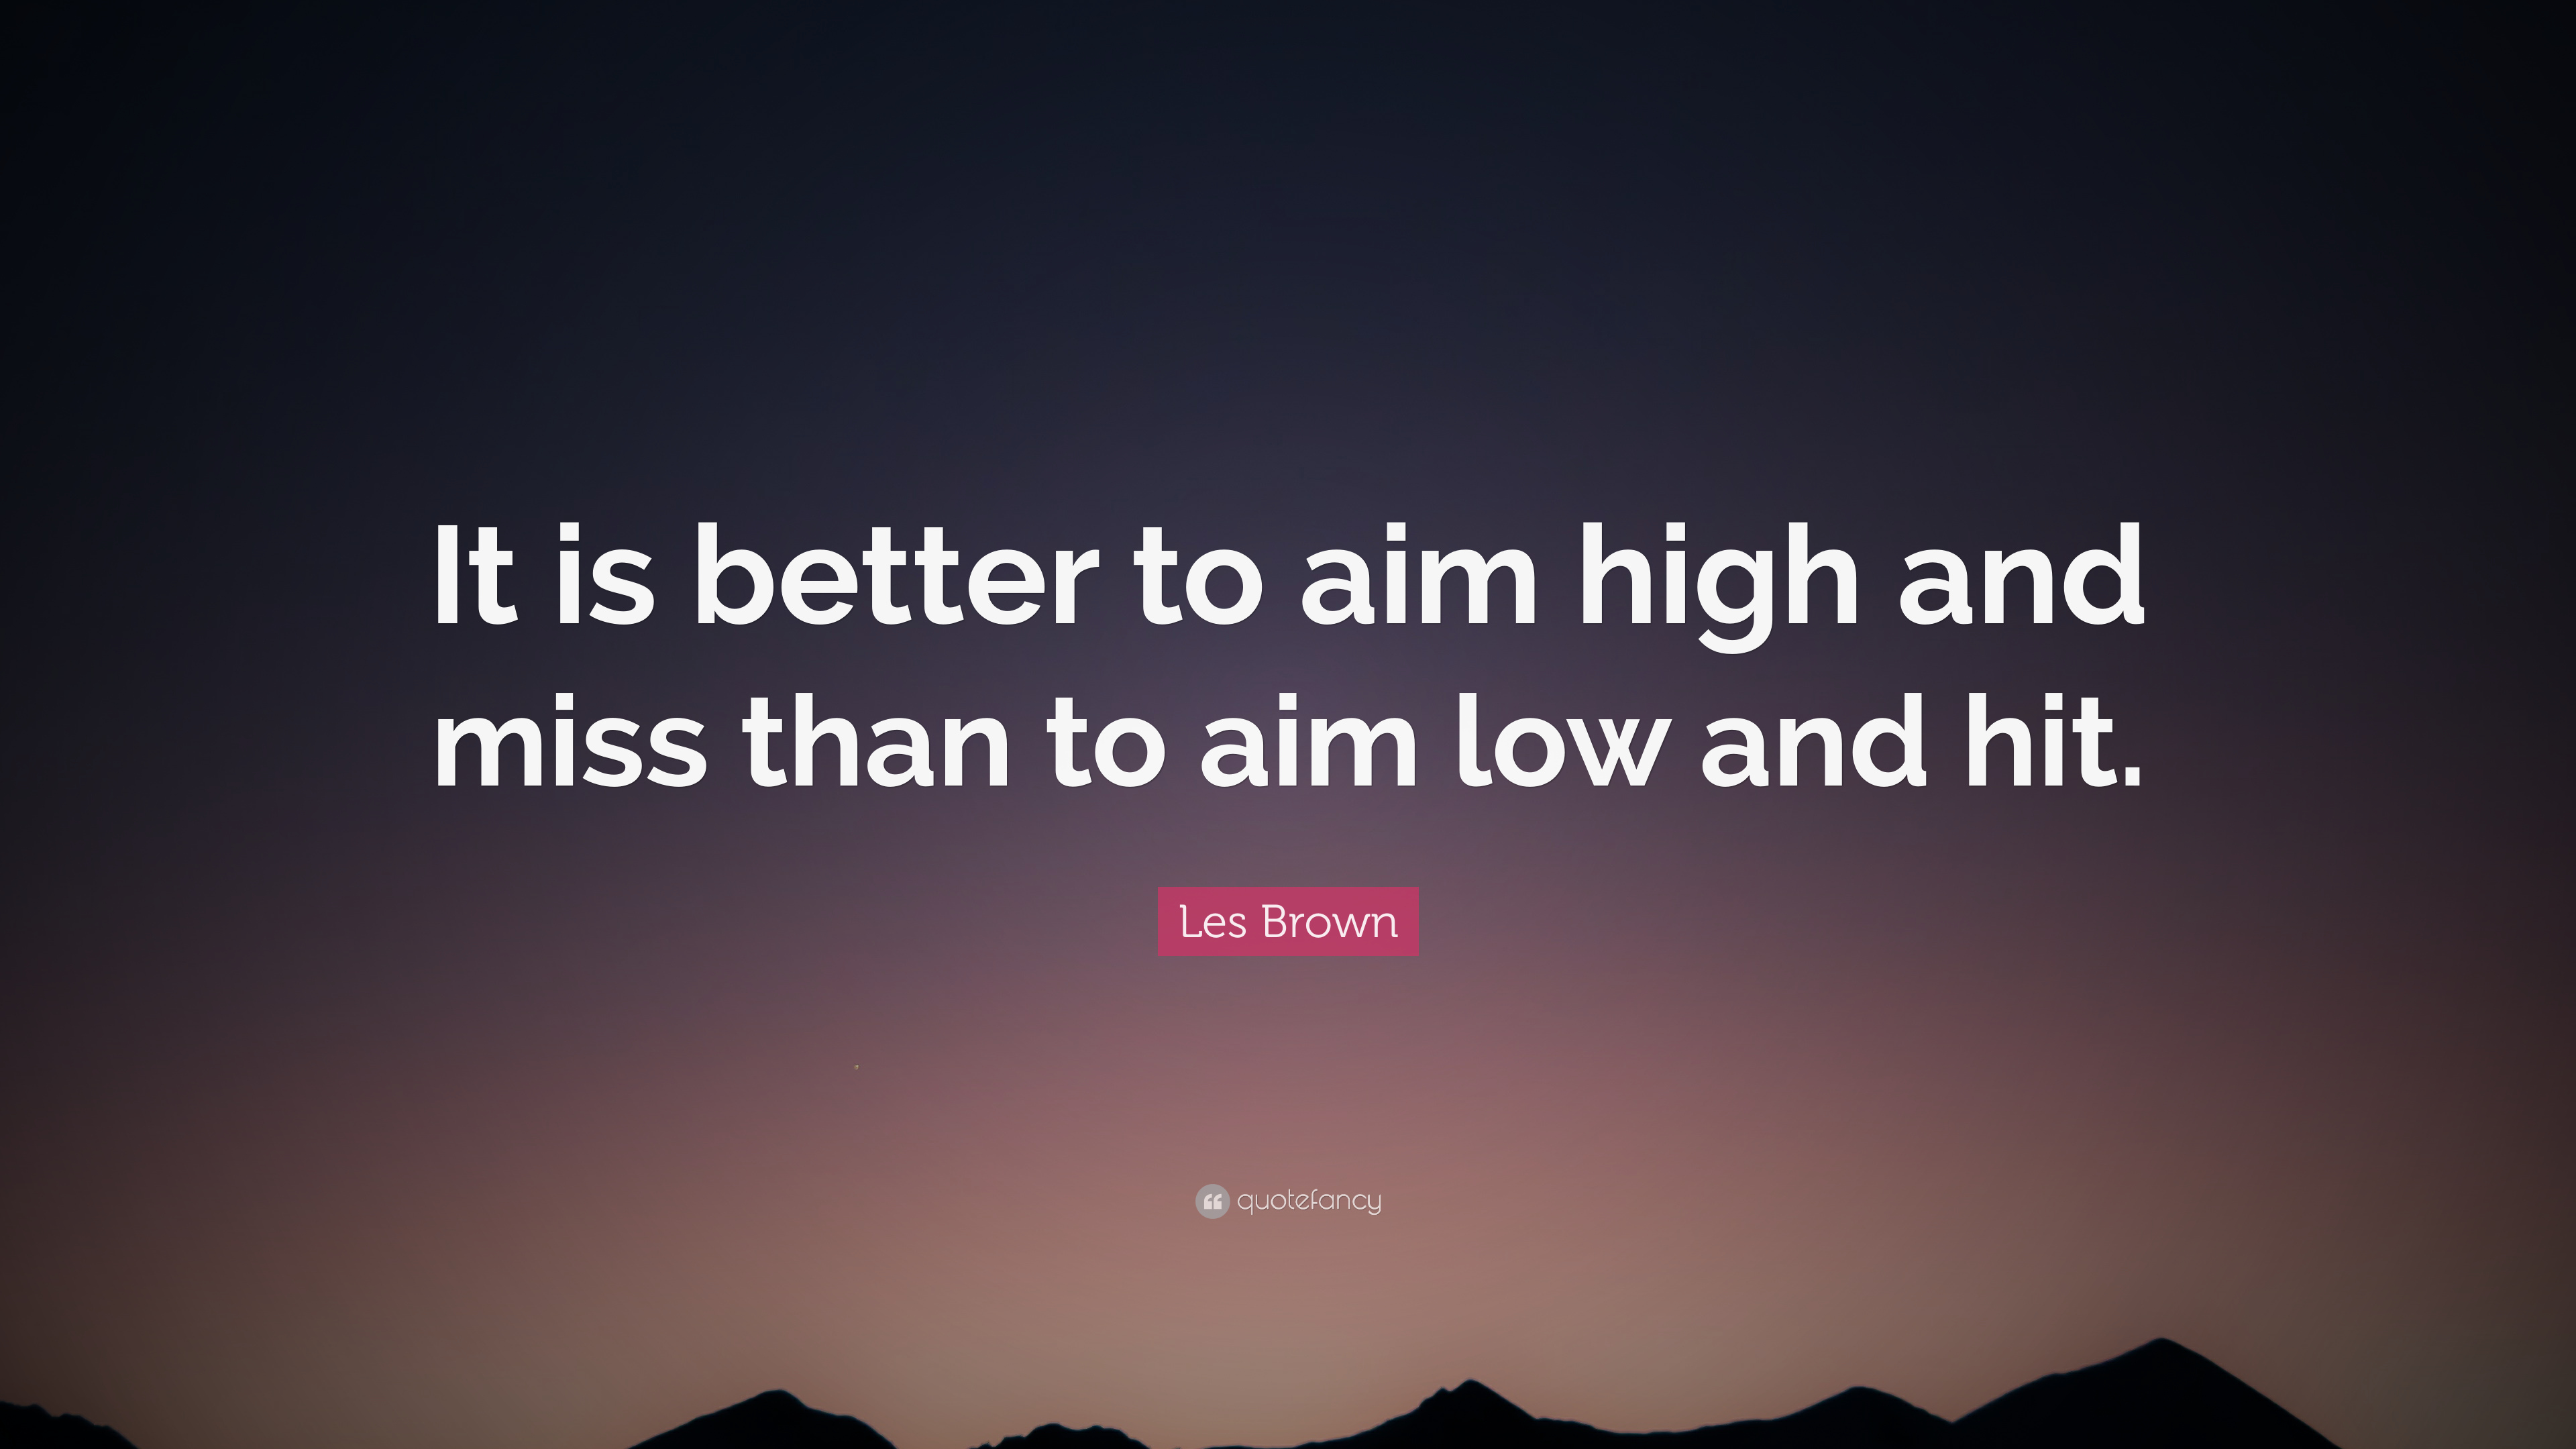 Les Brown Quote It Is Better To Aim High And Miss Than To Aim Low